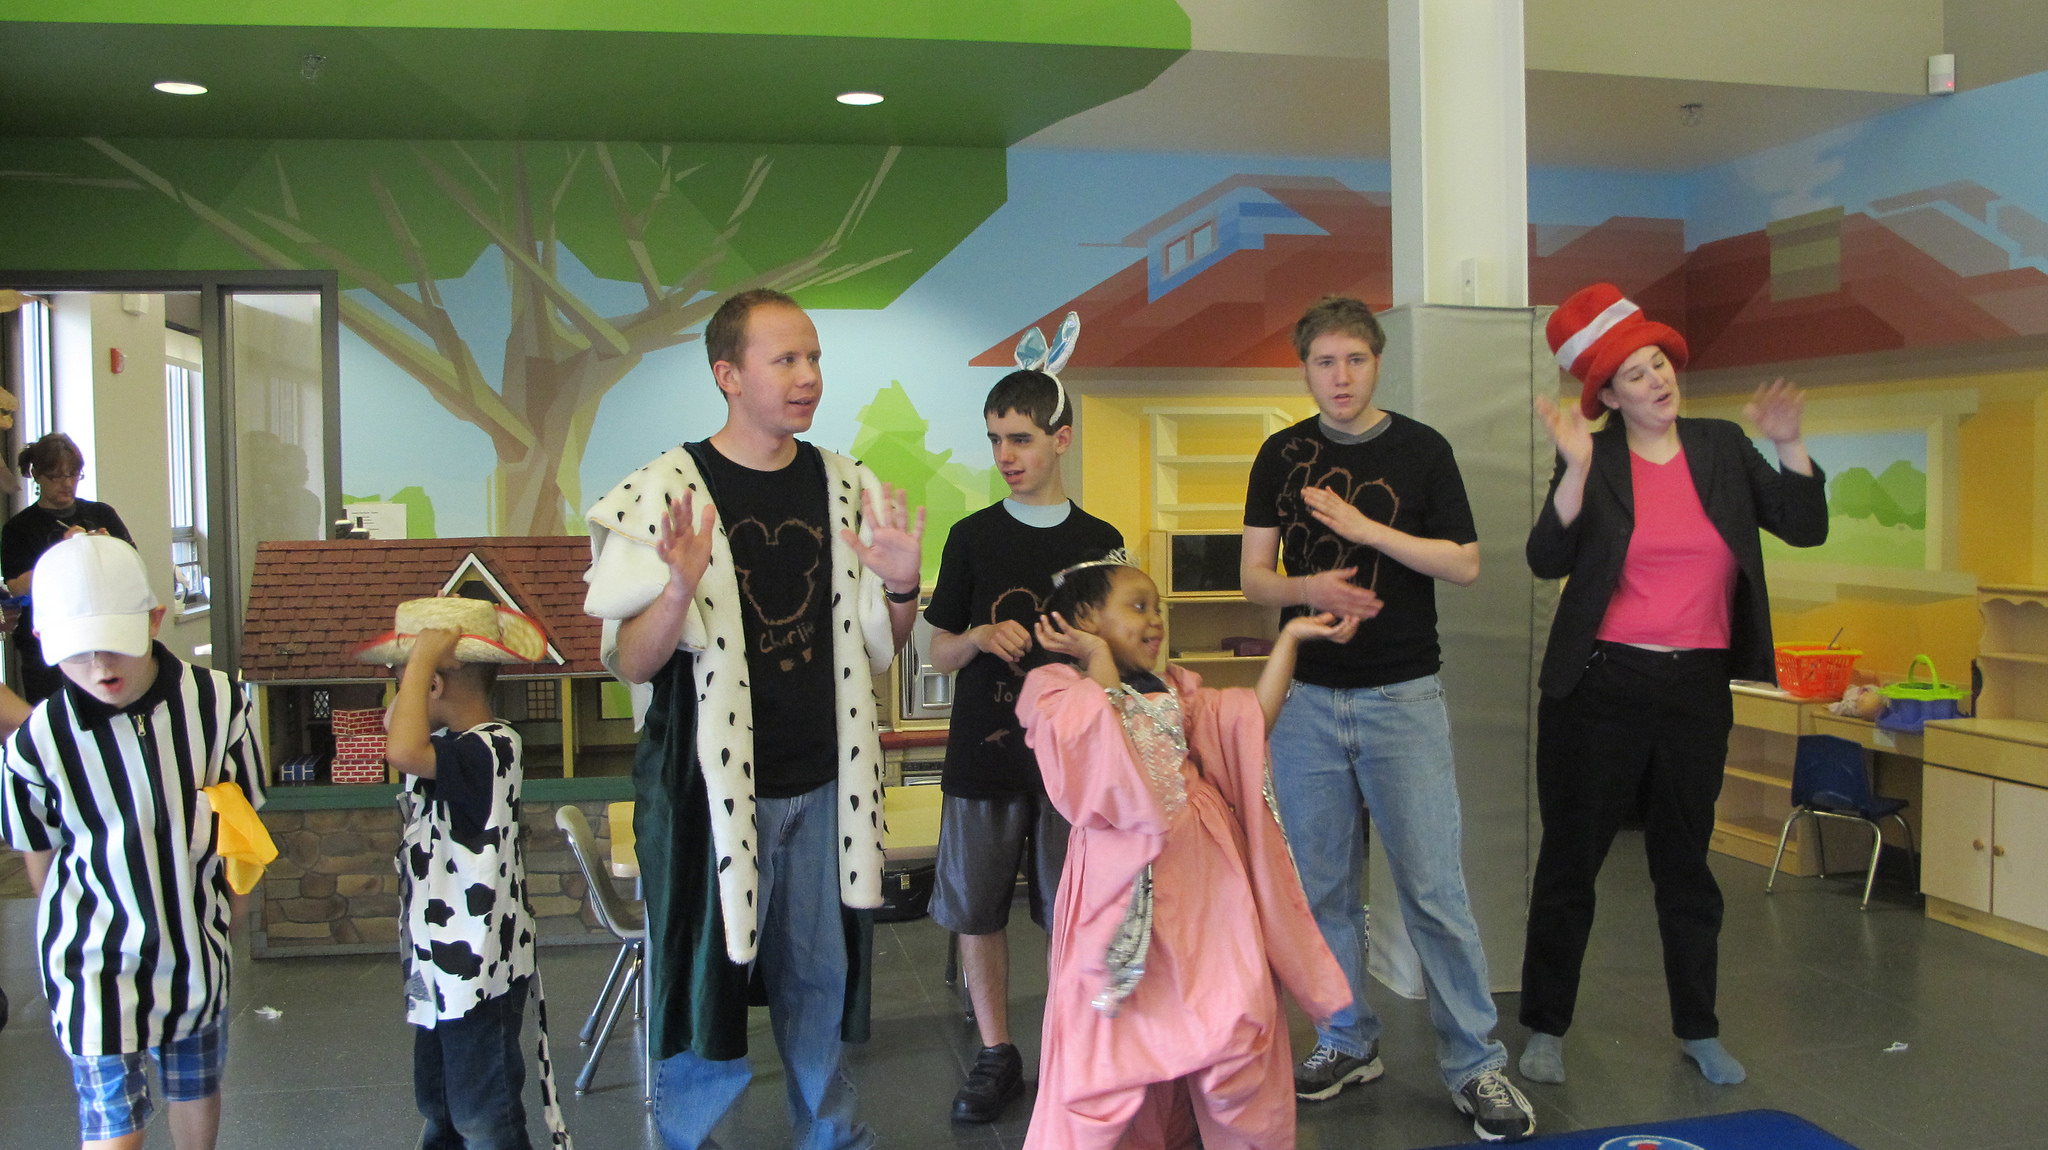 SuperStars Summer Arts Camp participants perform a song from a Disney movie. (Photo by Karen Stokes)